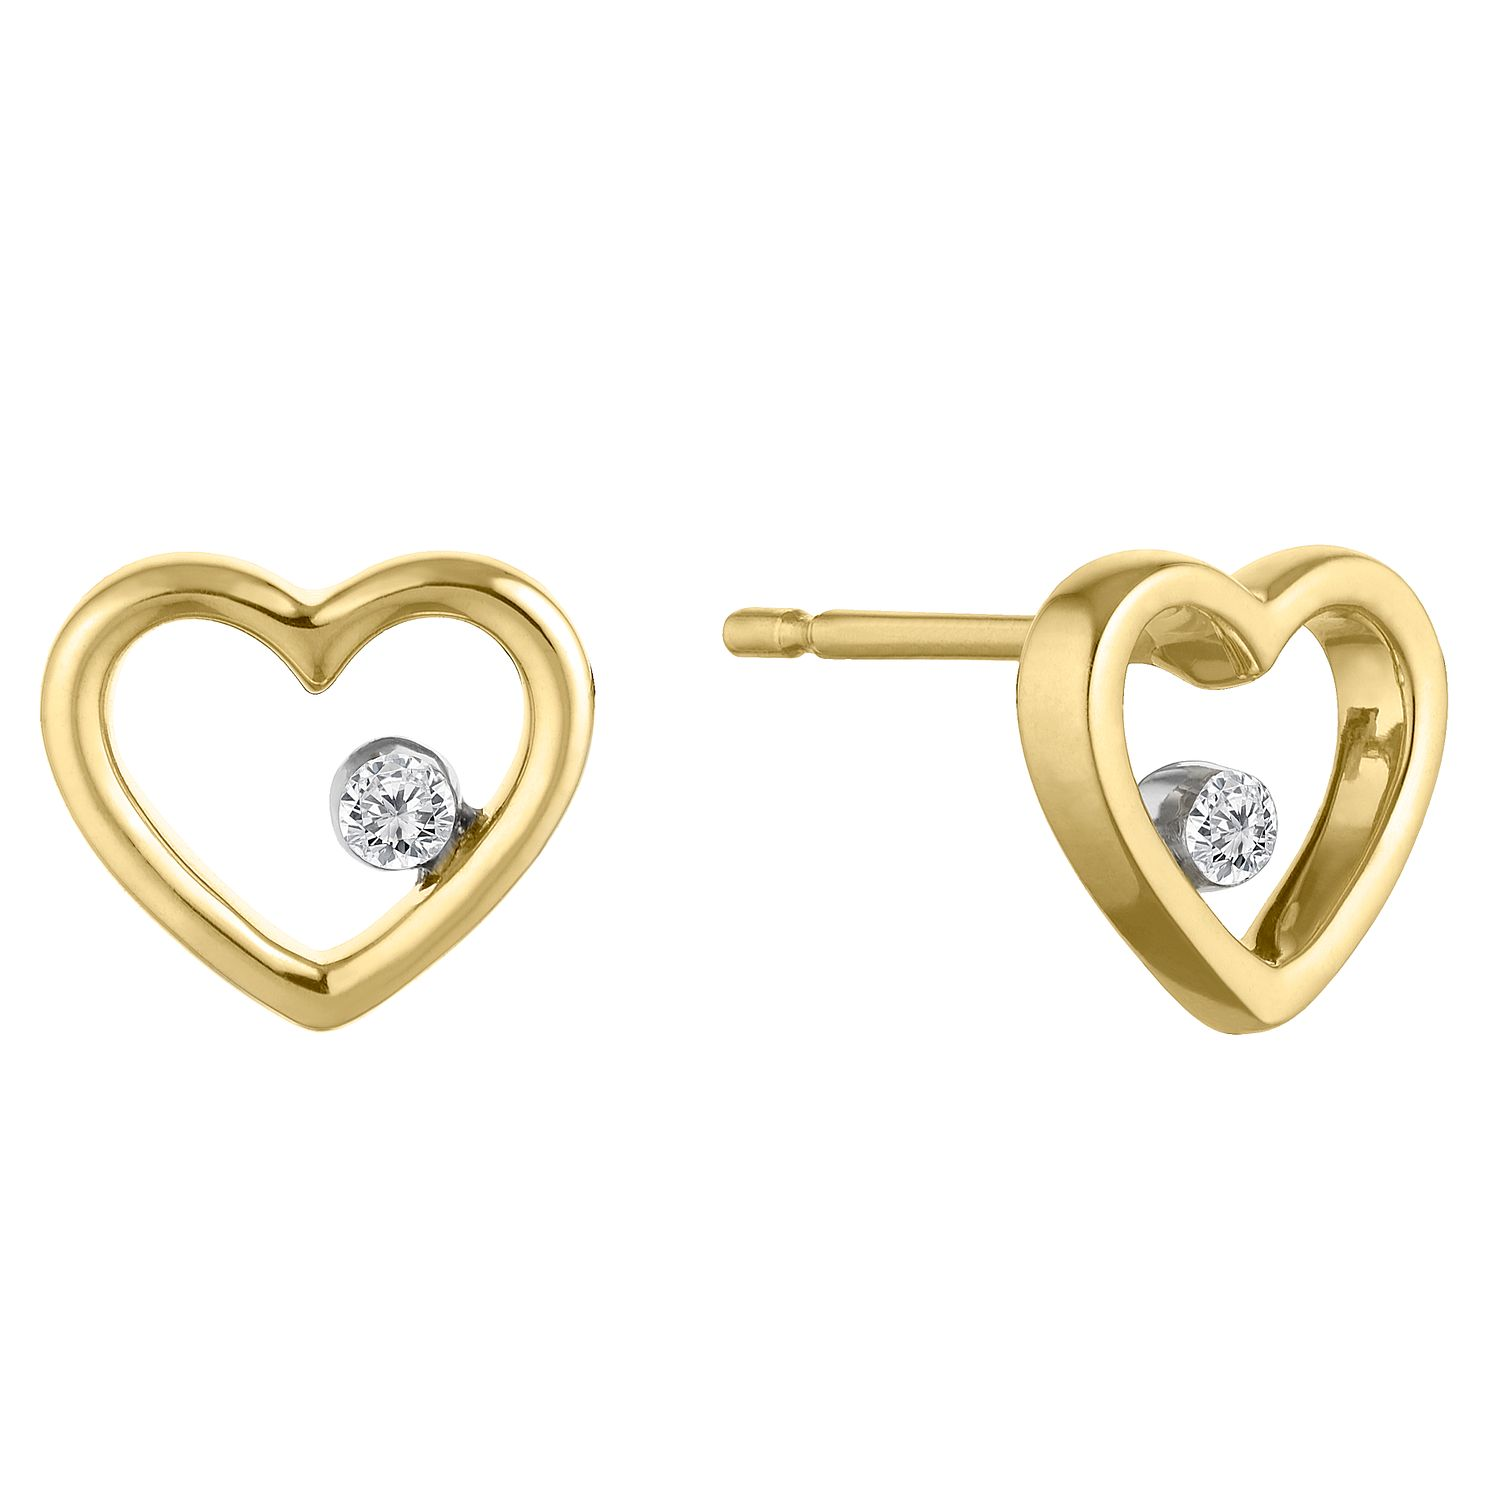 9ct Yellow Gold Heart Earrings with 0.04ct Diamond - Product number 9539824